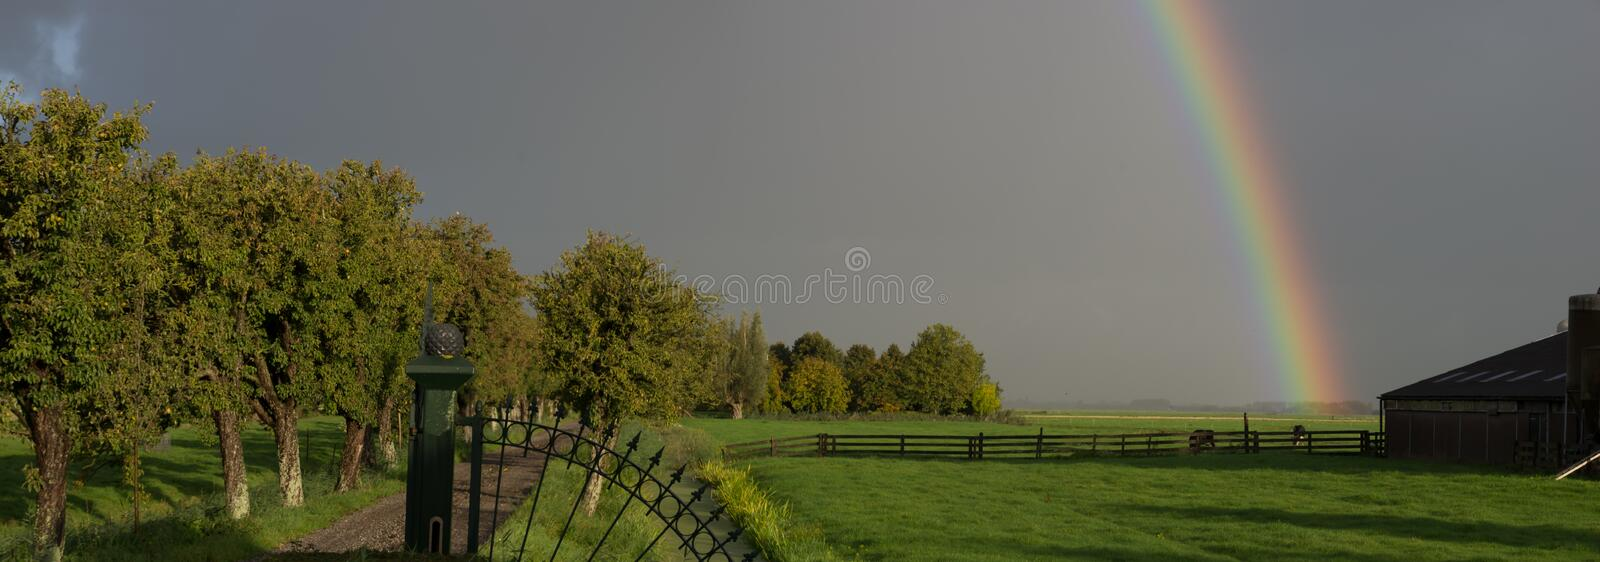 Panoramic landscape with rainbow at farmland in Woerden, Netherlands. Farmland and entrance gate with morning rainbow sky in Woerden, Netherlands stock photography